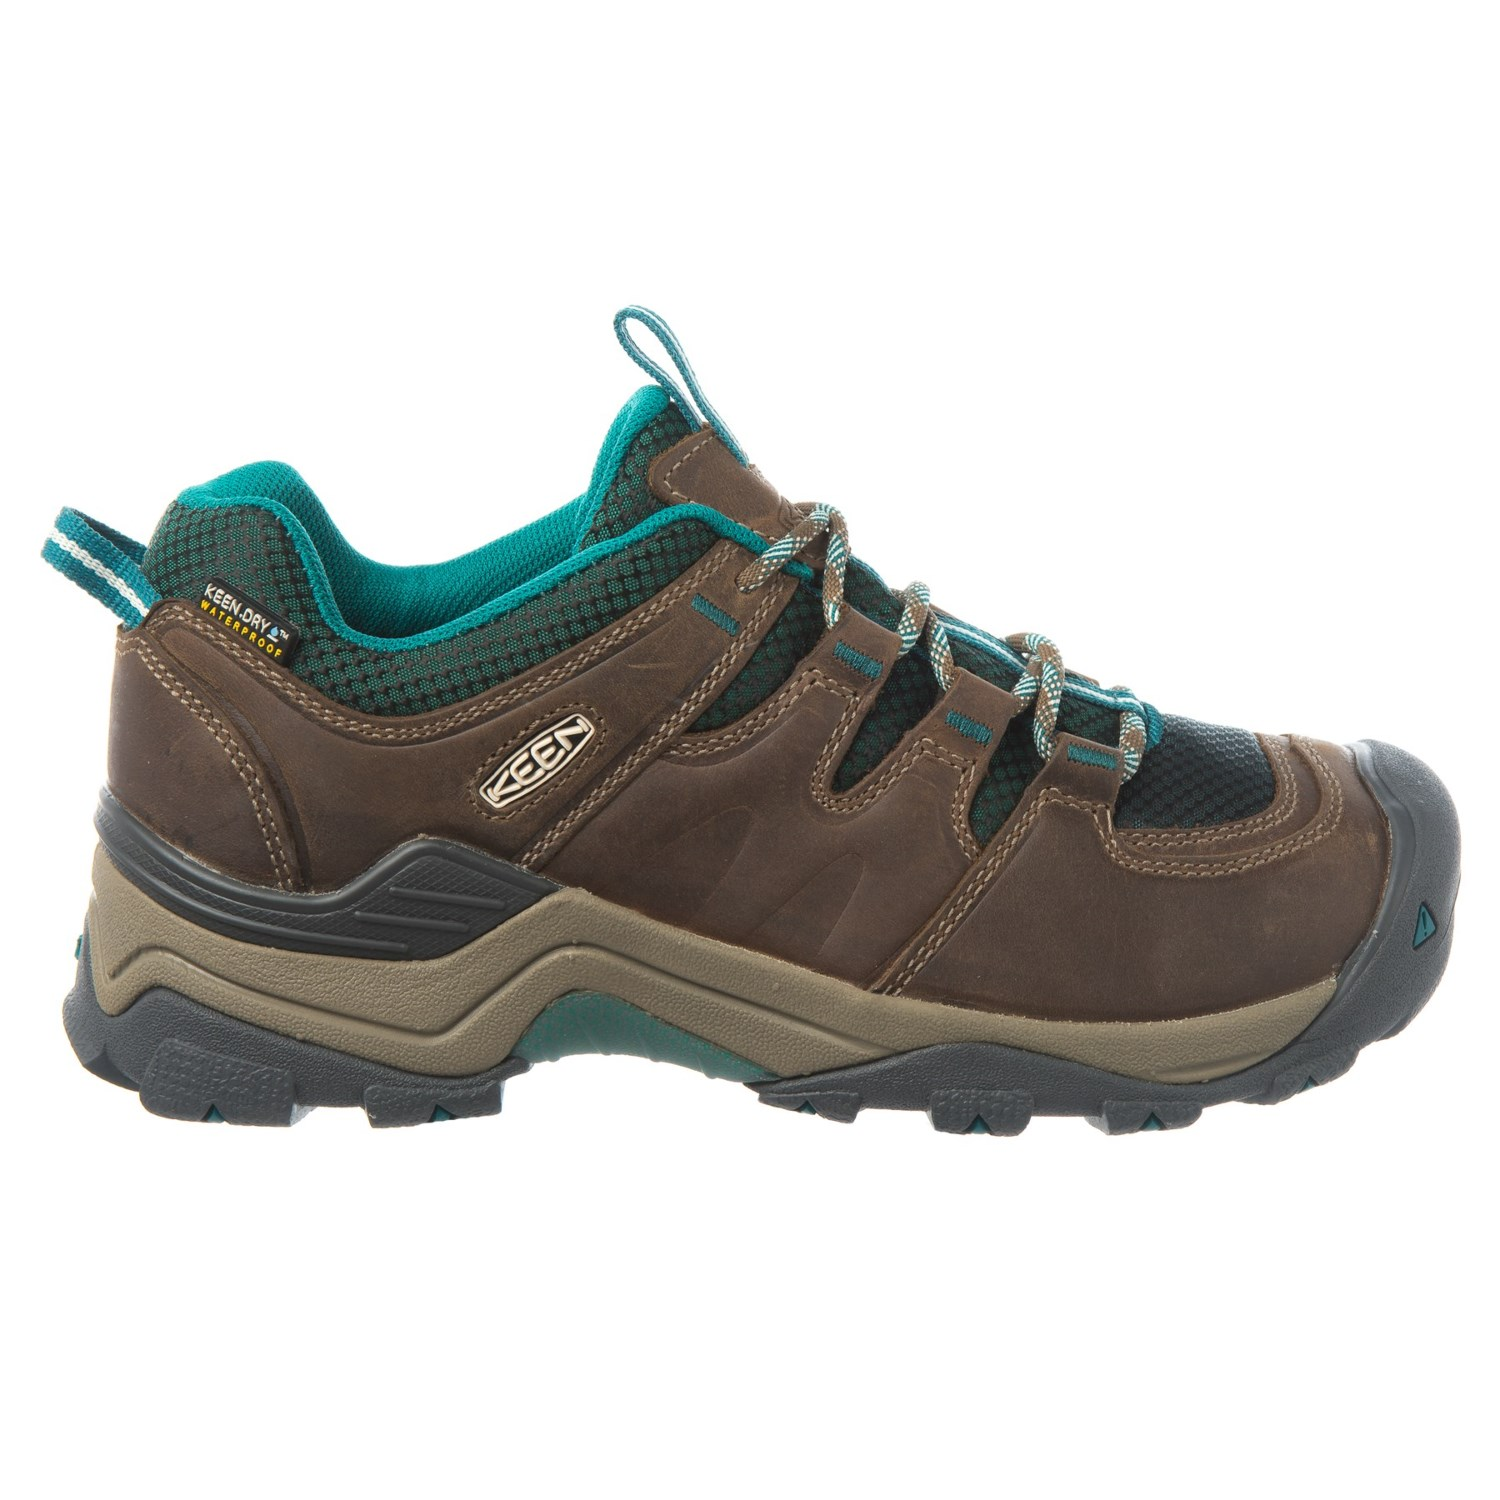 Good Brand For Waterproof Hiking Shoes Women